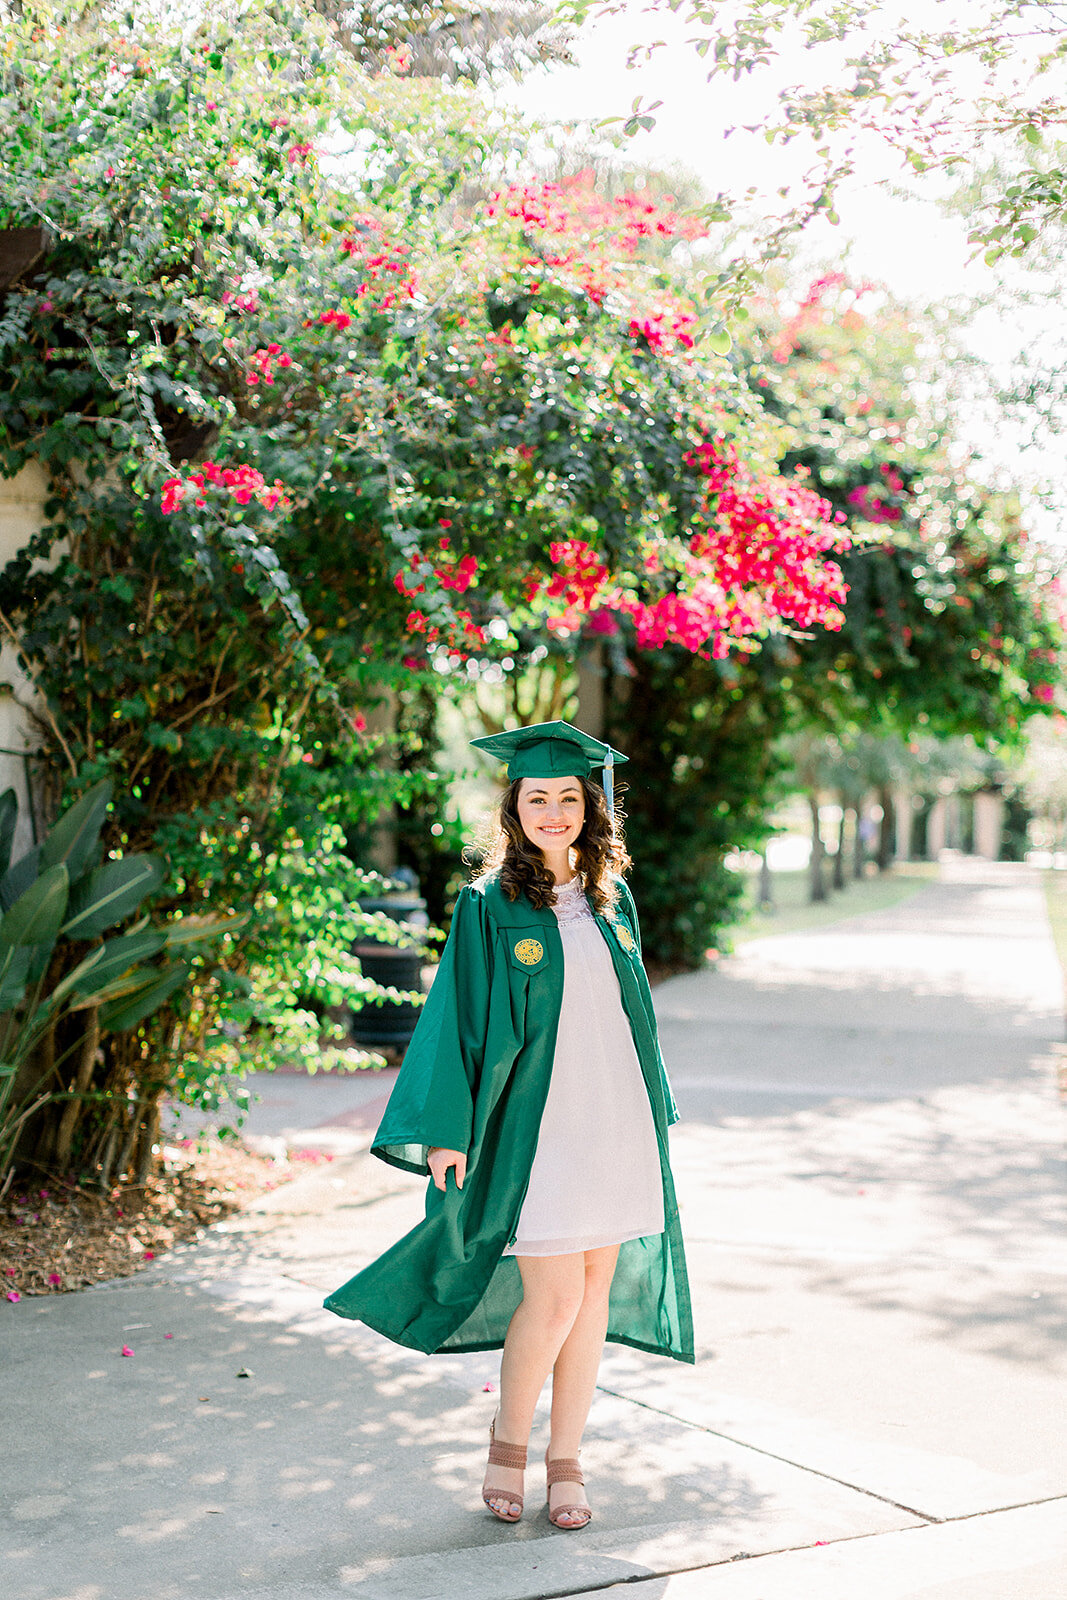 Cassidy Nathanson USF Tampa Senior Portrait Photographer Casie Marie Photography-115